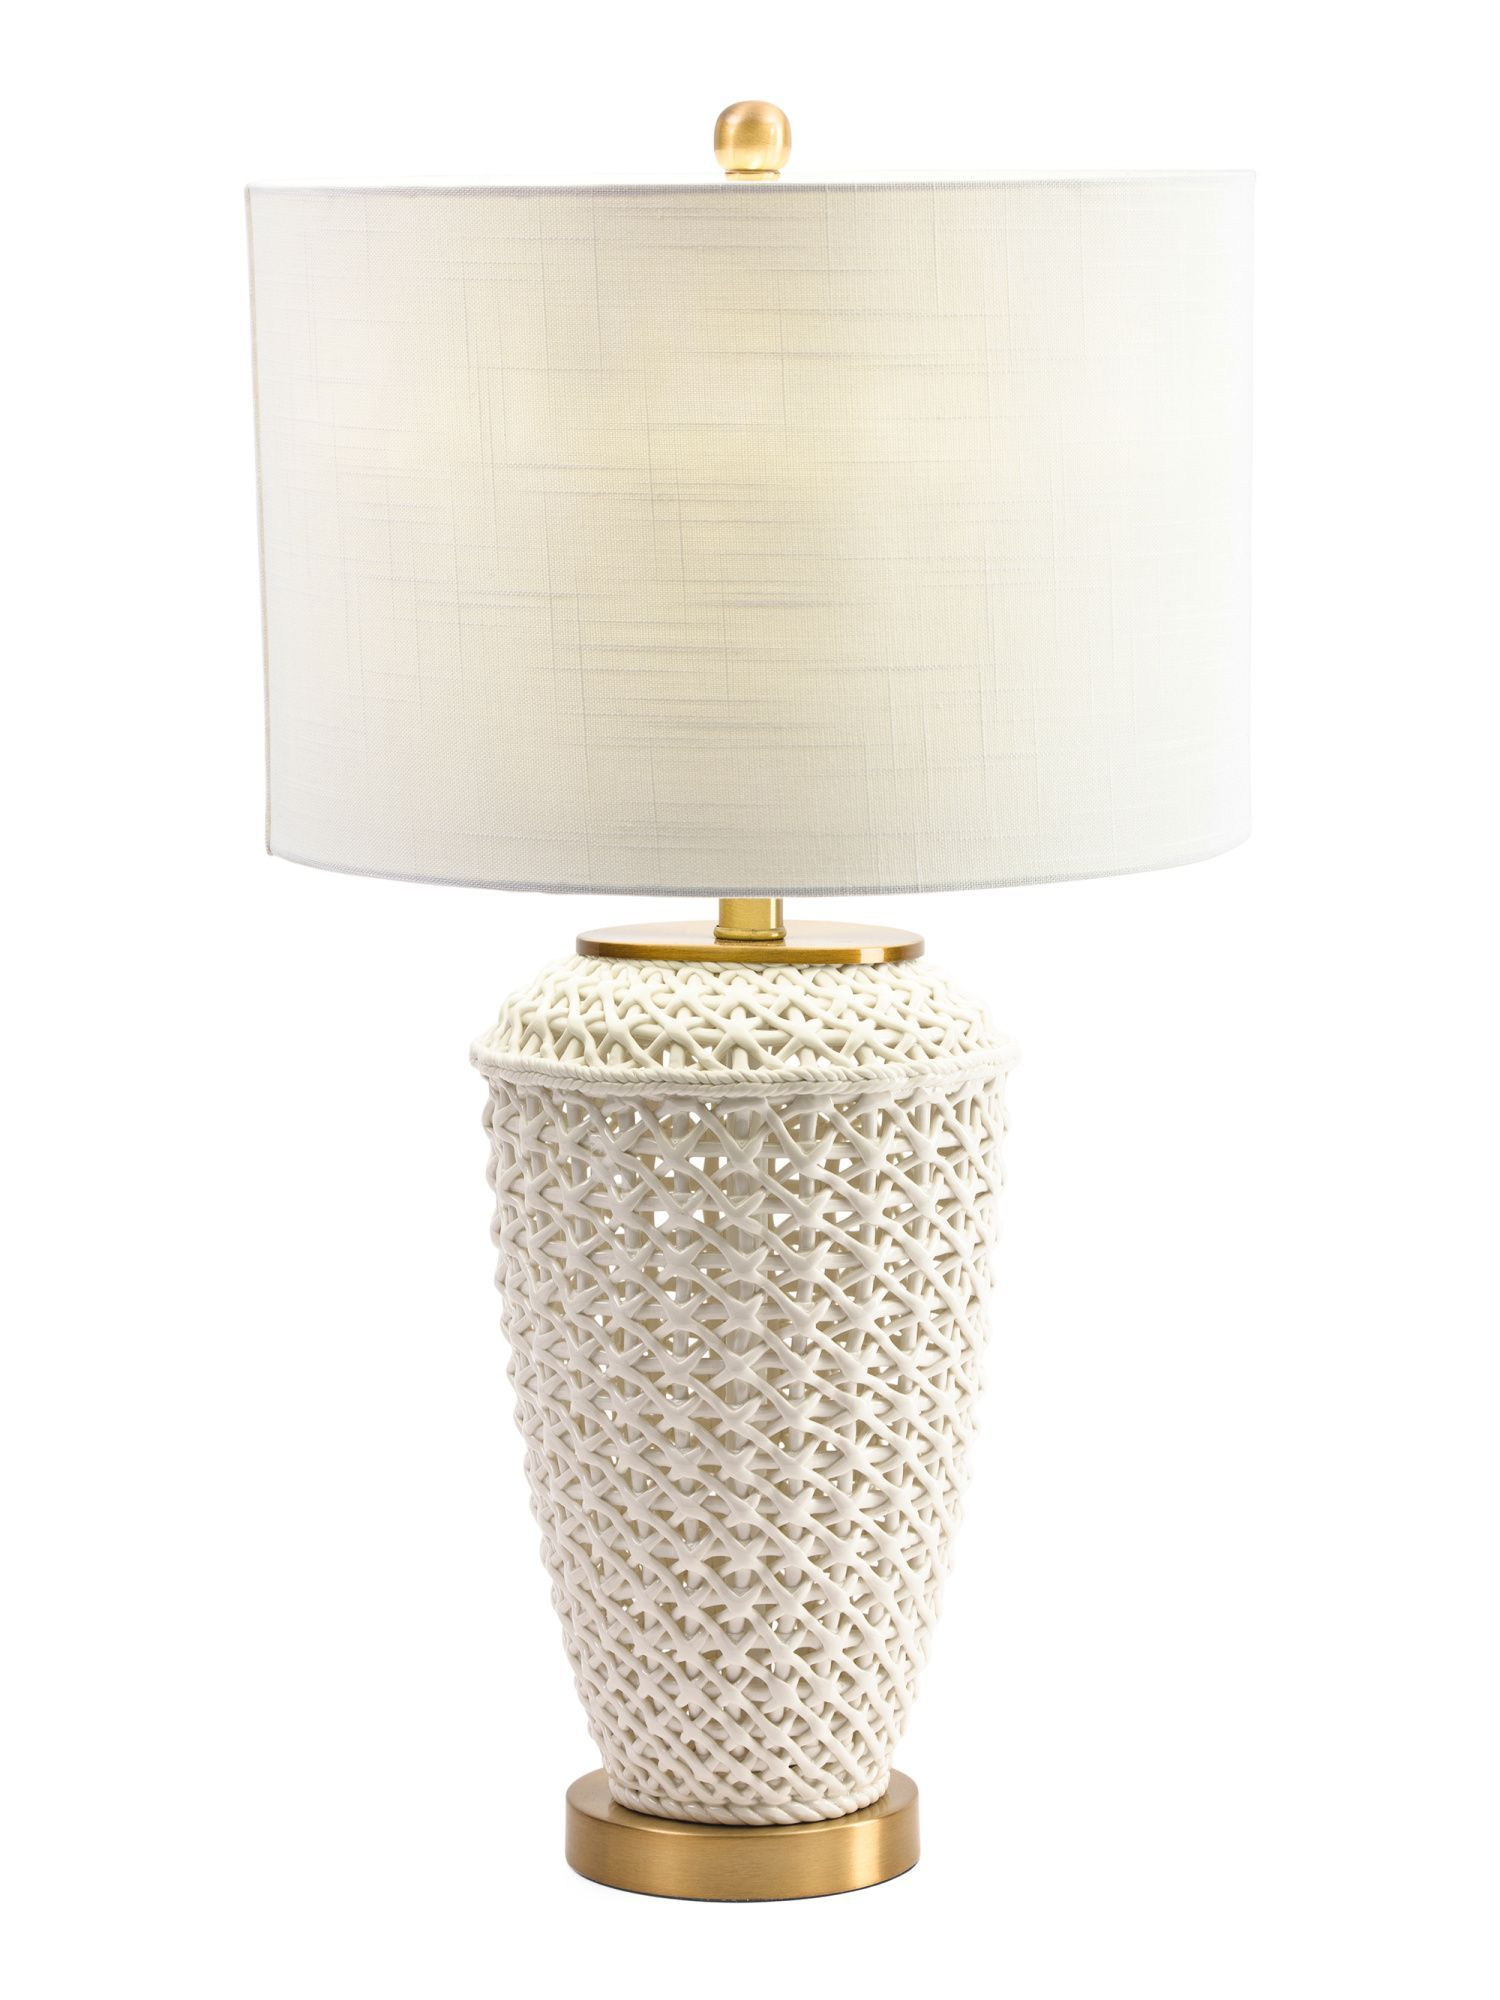 Ceramic Open Weave Table Lamp Products Pinterest